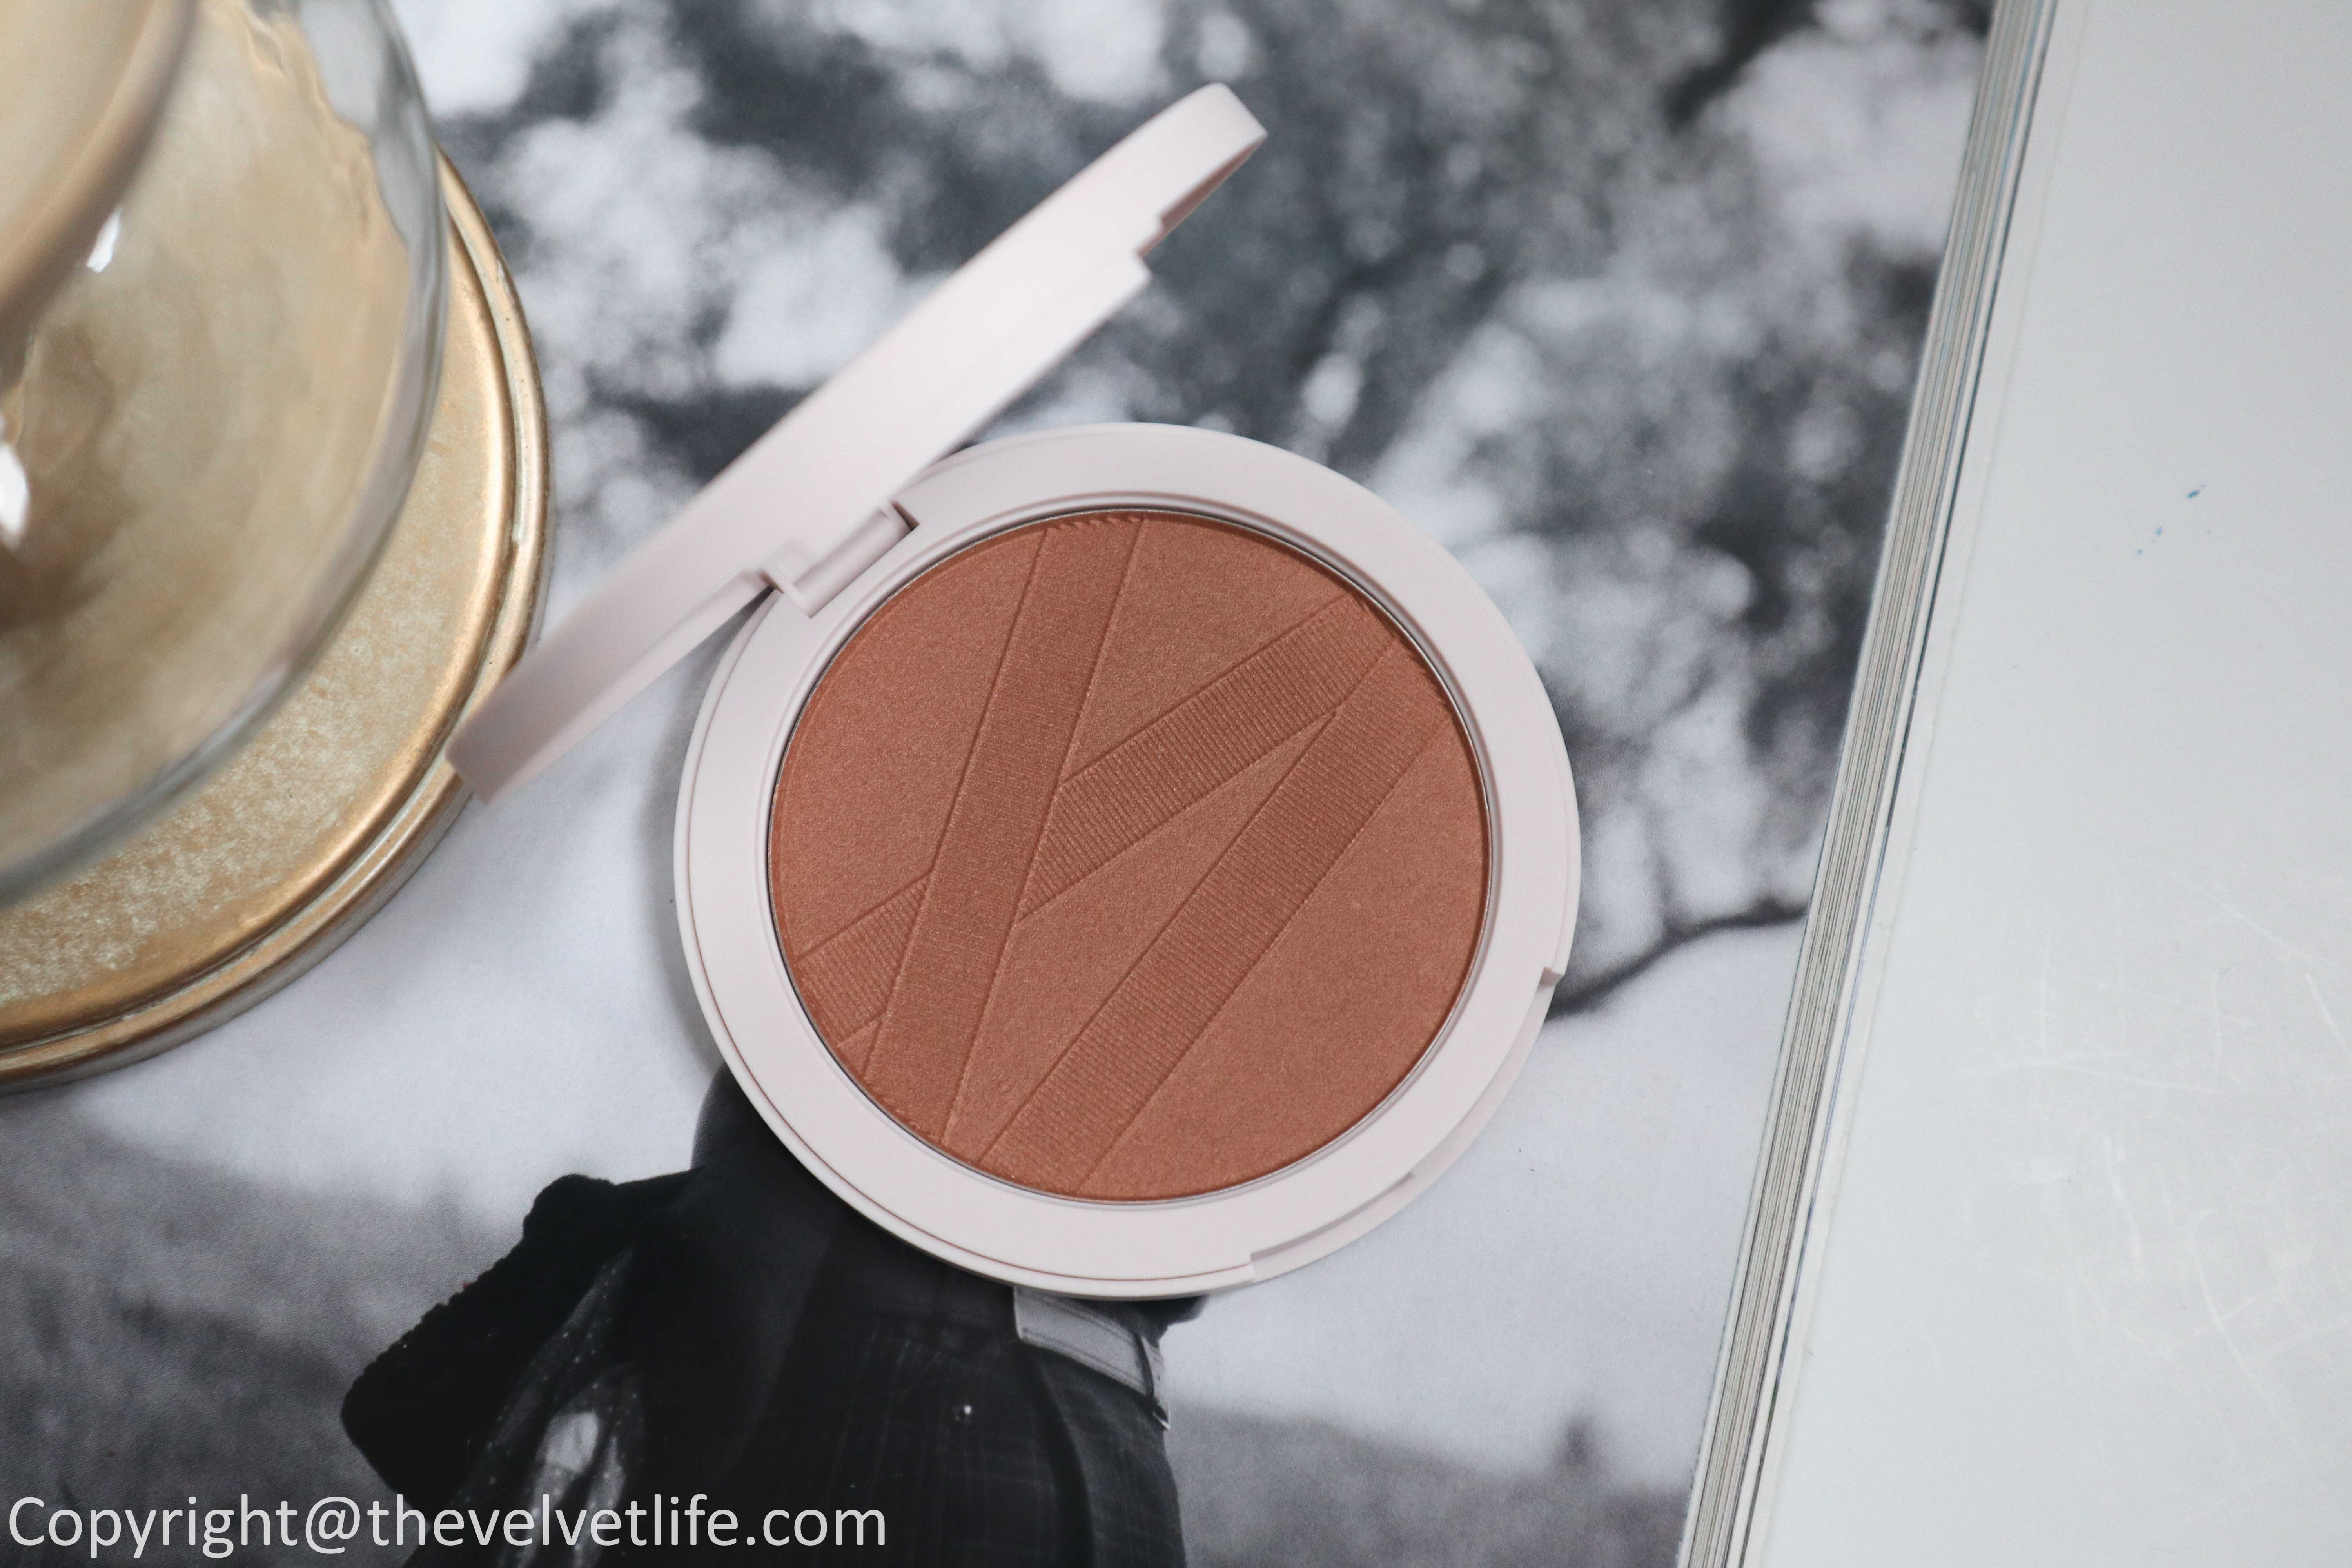 Laura Mercier Ballet à Paris Holiday 2020 Collection review swatches of Rose Pirouette Illuminator, Standing Ovation Cheek Palette, Hand Cream Quartet, Luxe